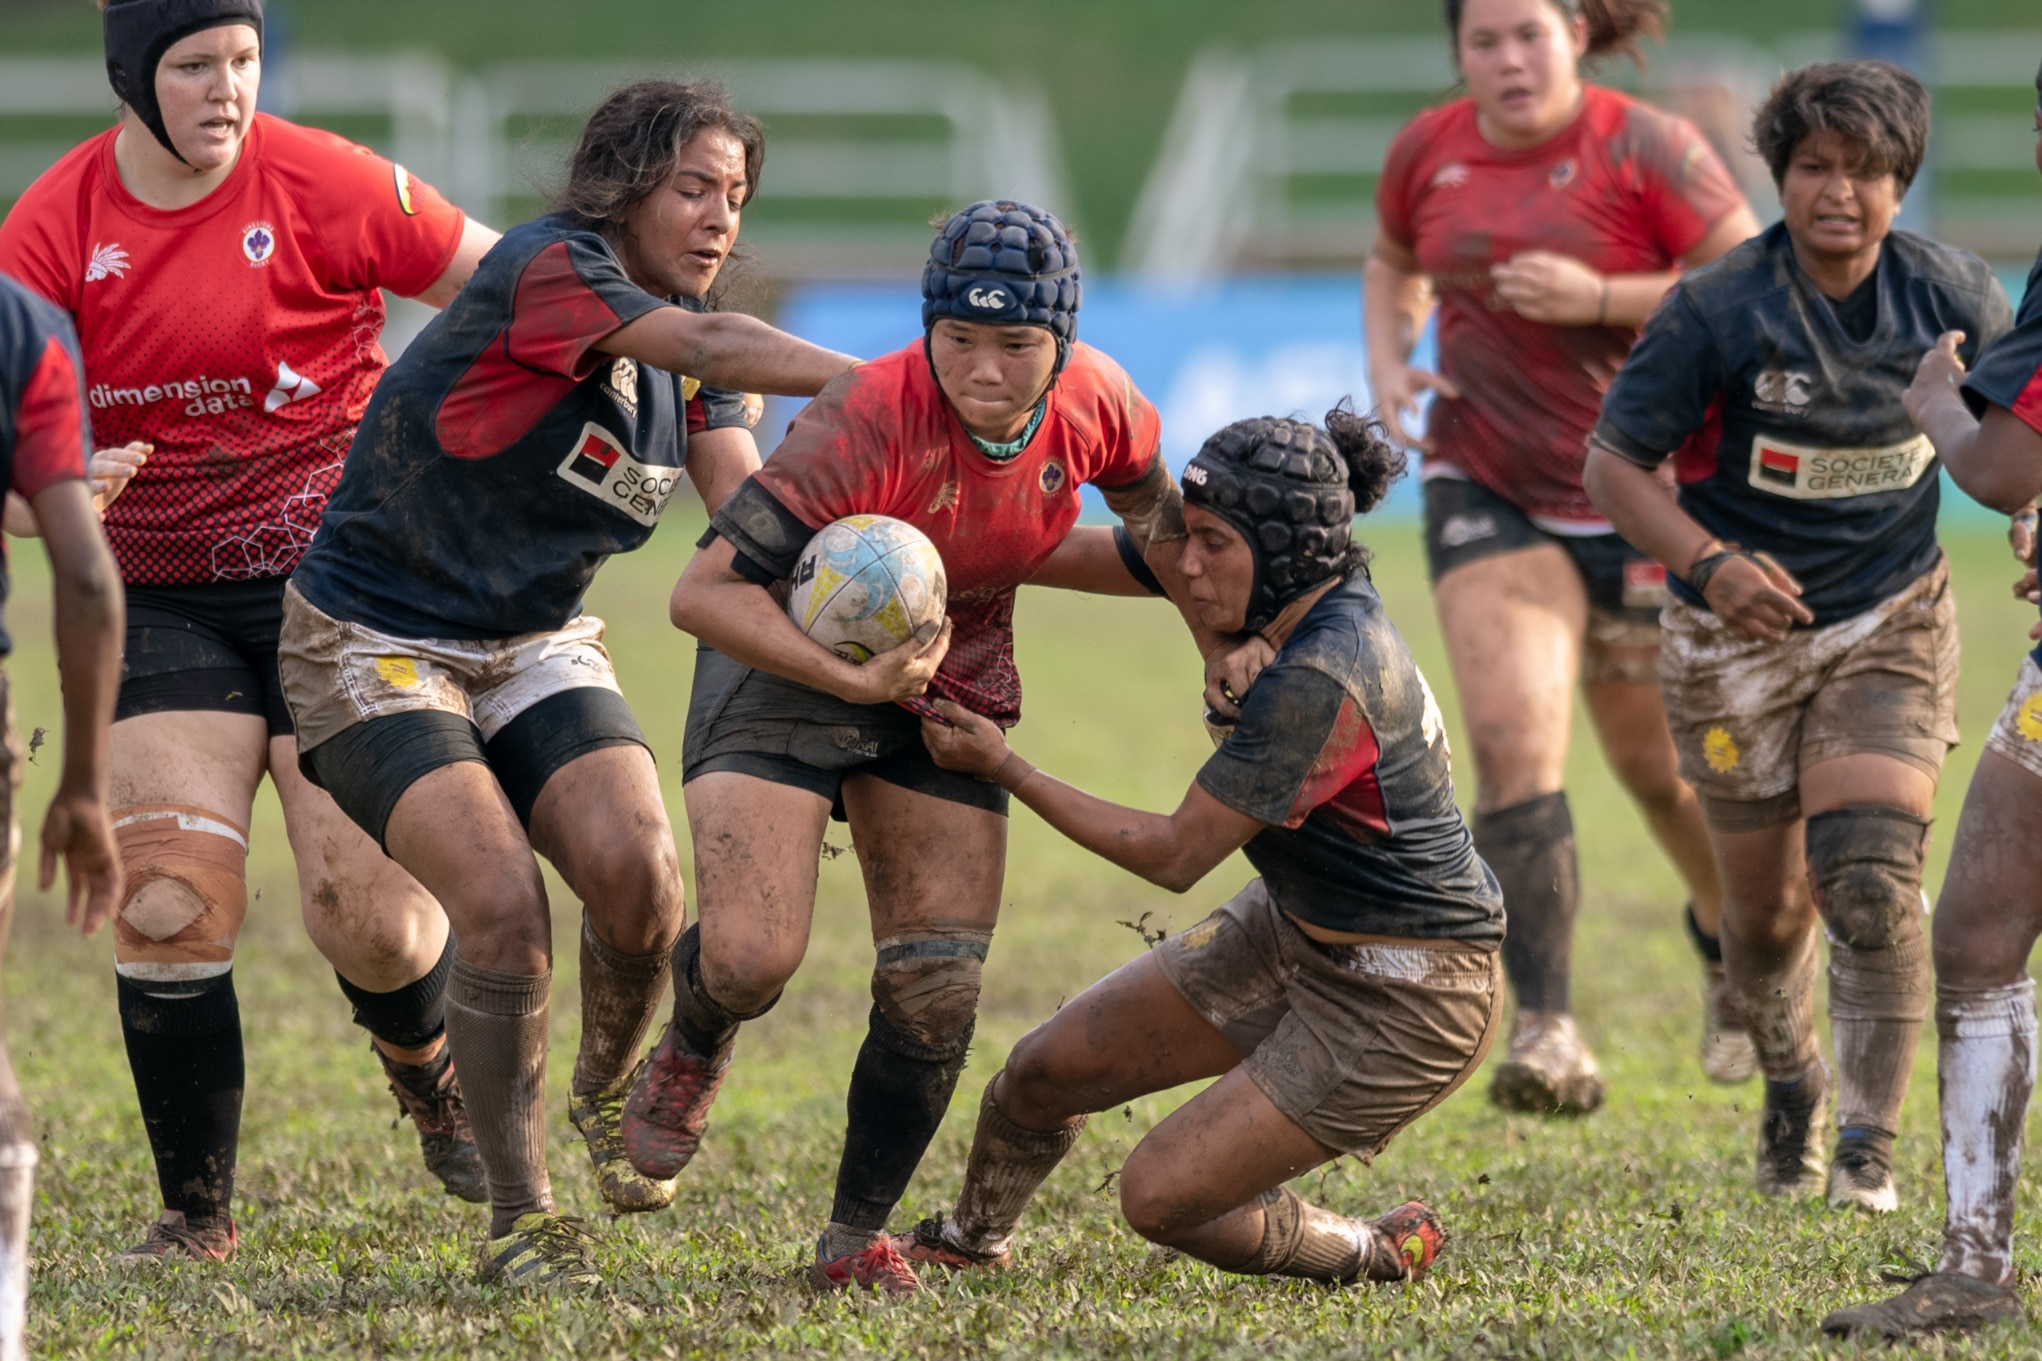 Pardeshi: India women play with all heart #RugbyIndia #AsiaRugby